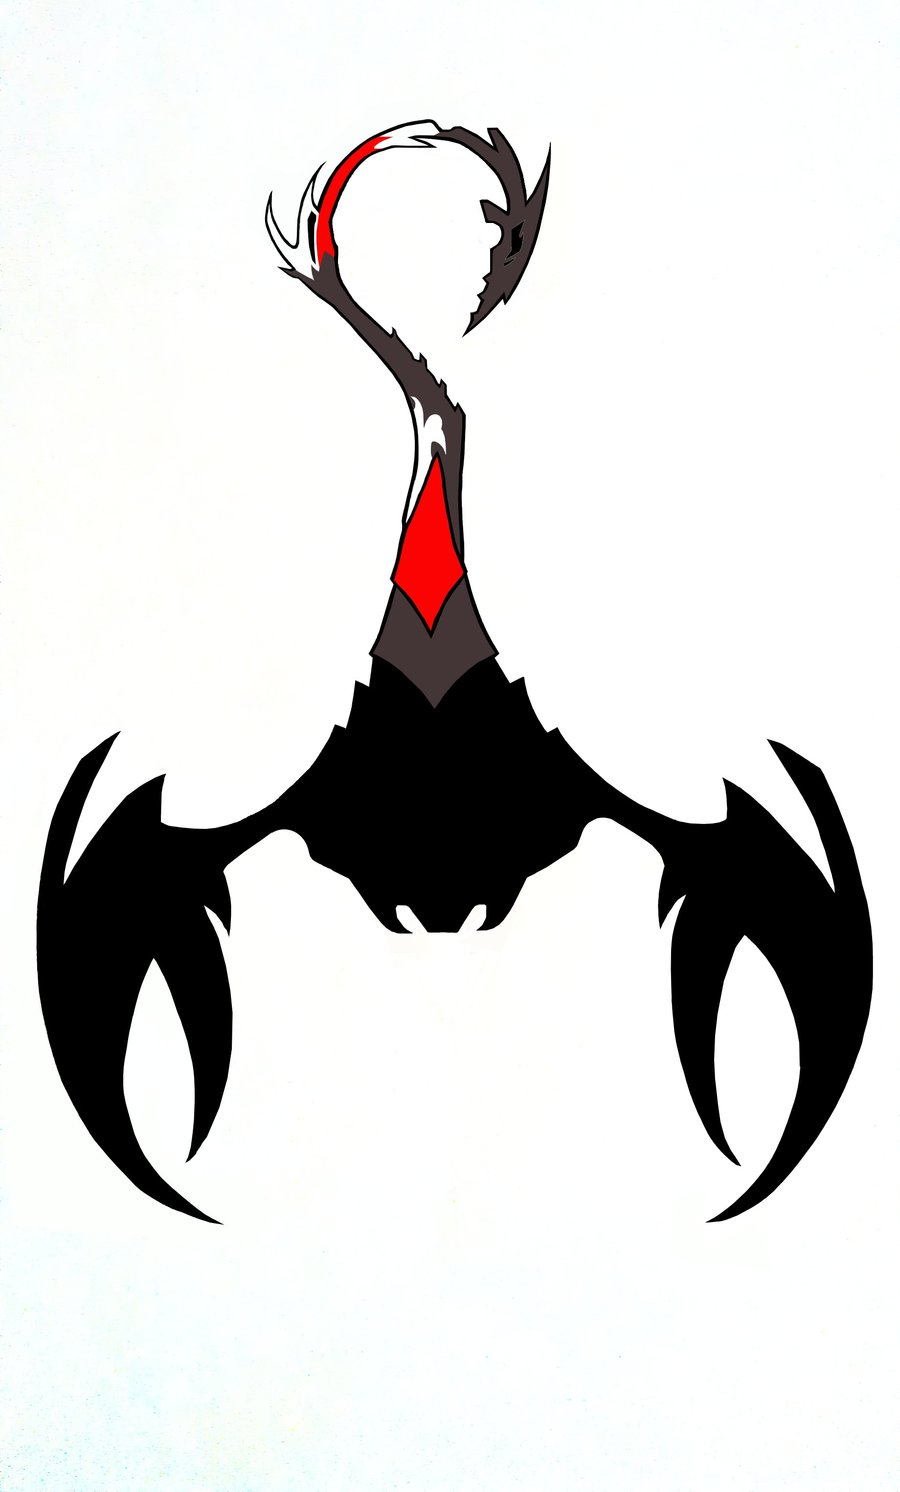 Scorpion Tattoo Design In New Style